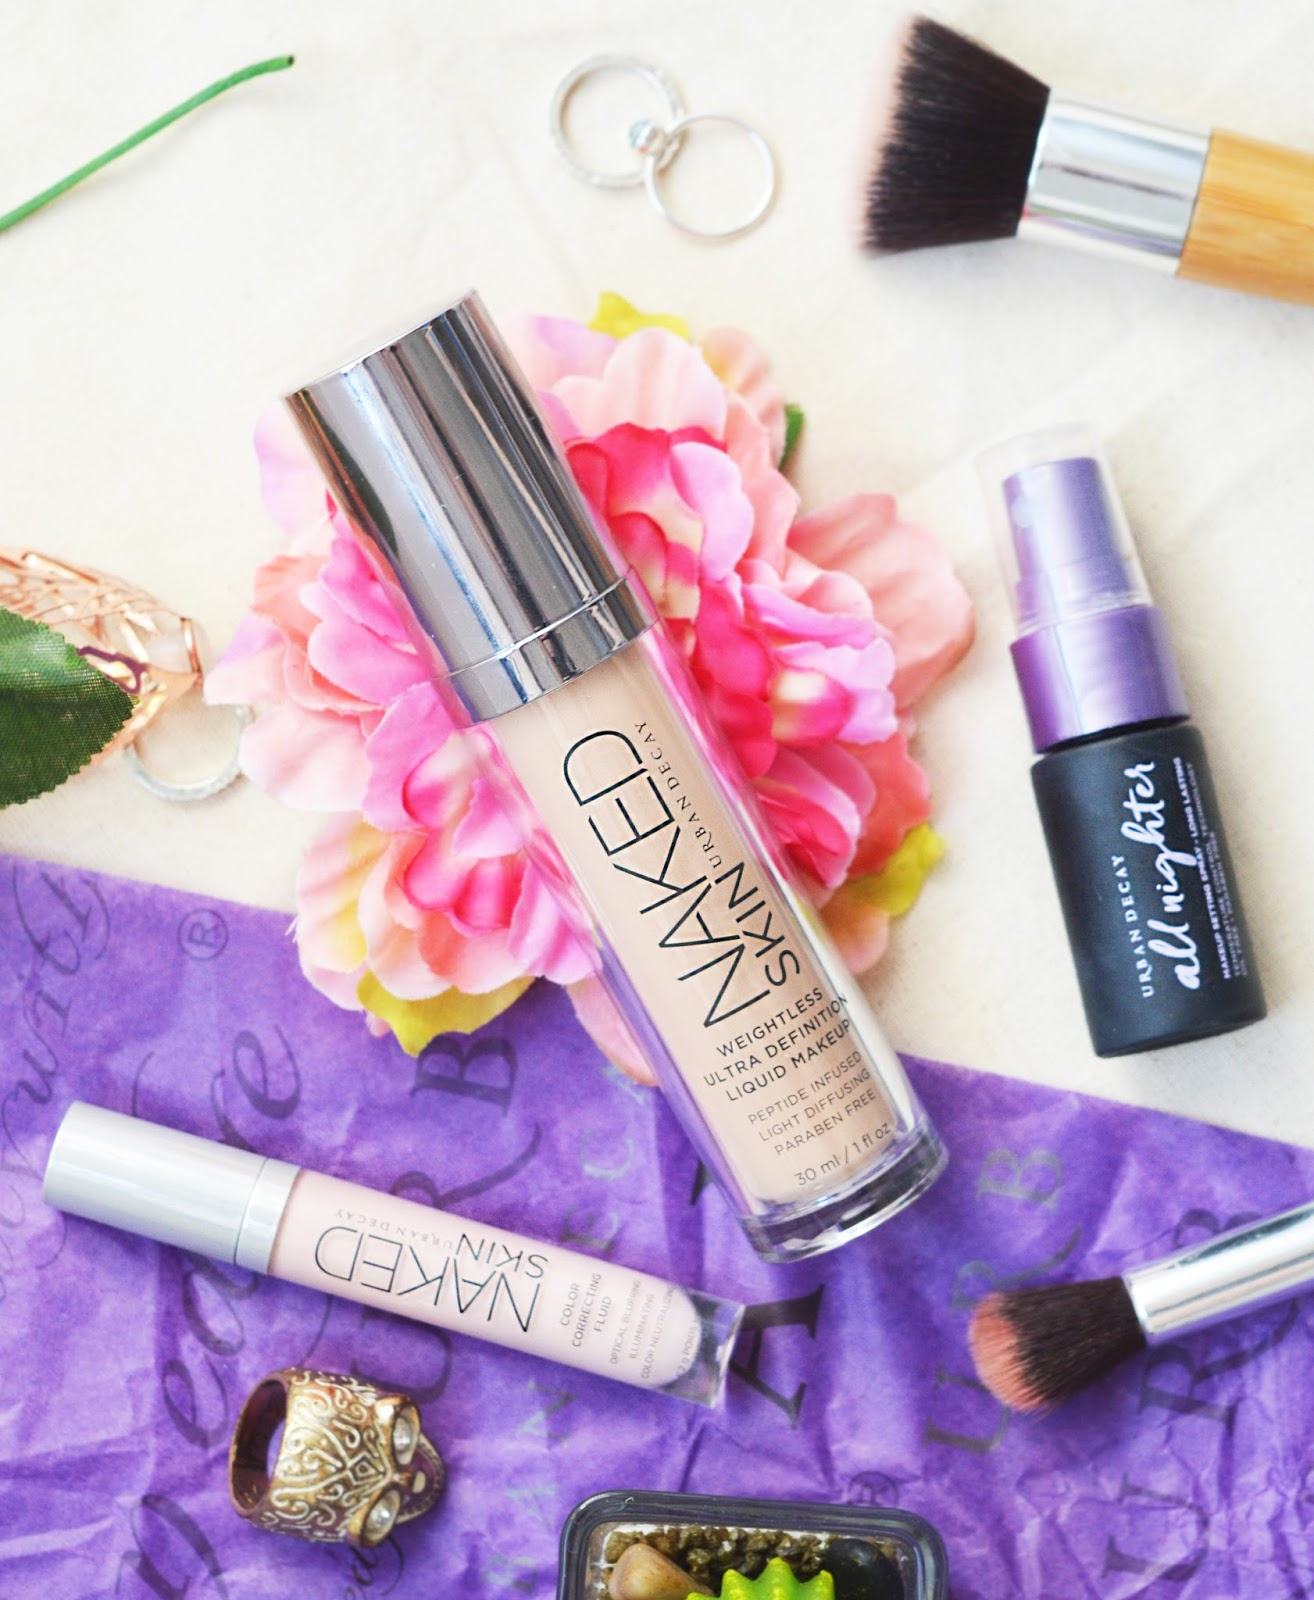 urban decay naked skin flatlay with flowers